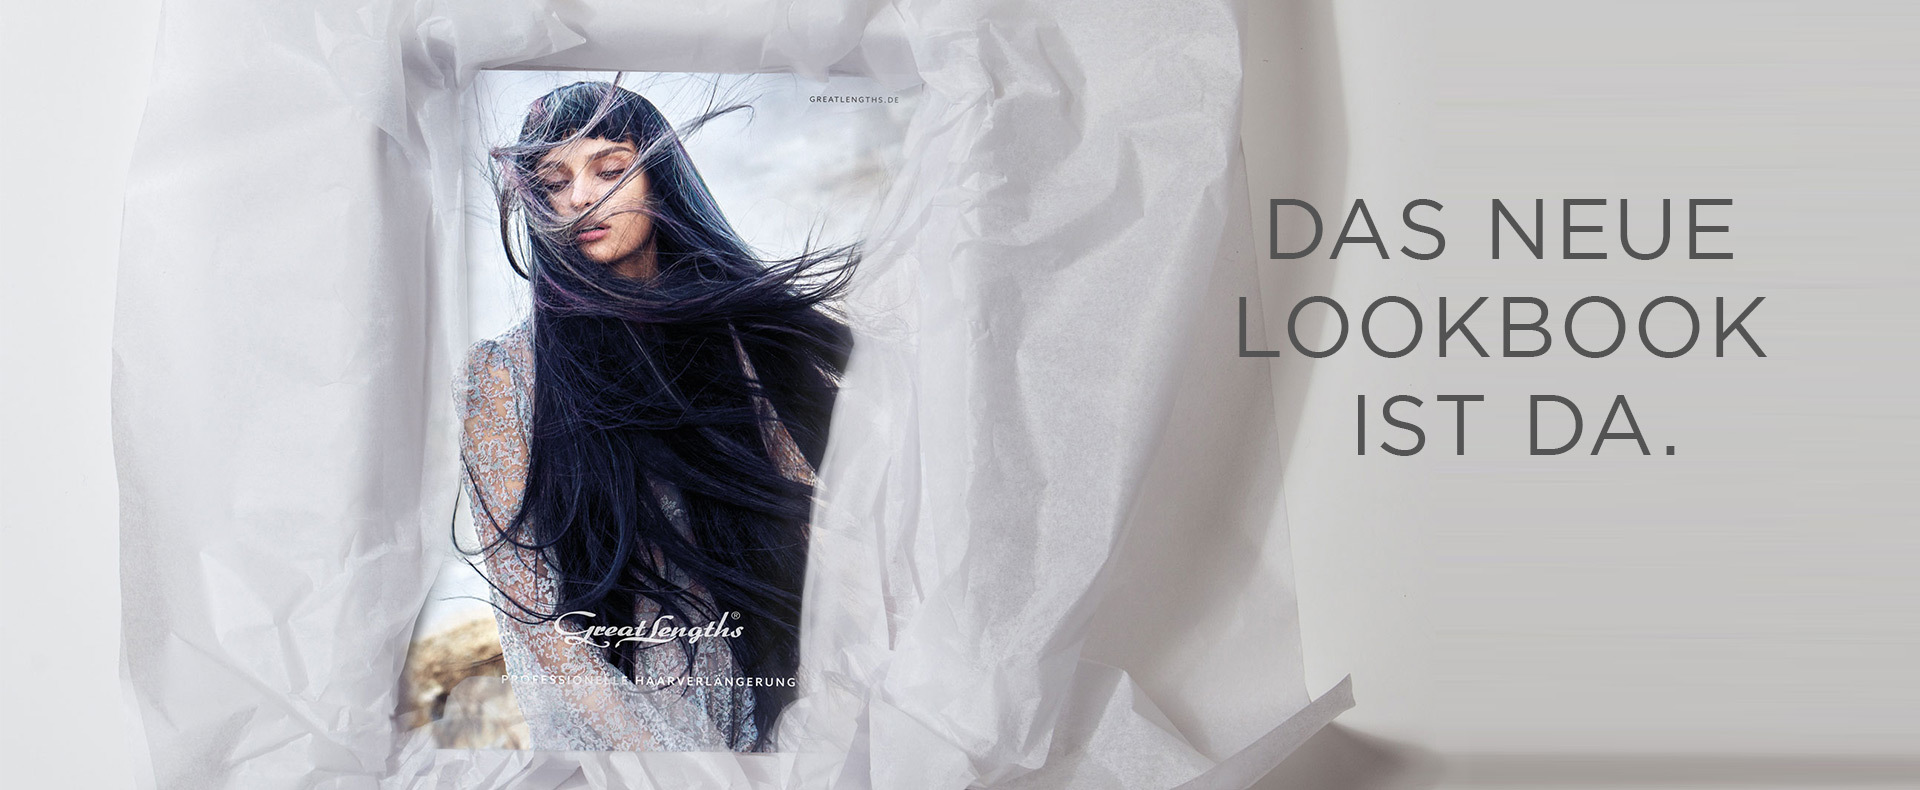 Das neue Lookbook ist da! (© Great Lengths)